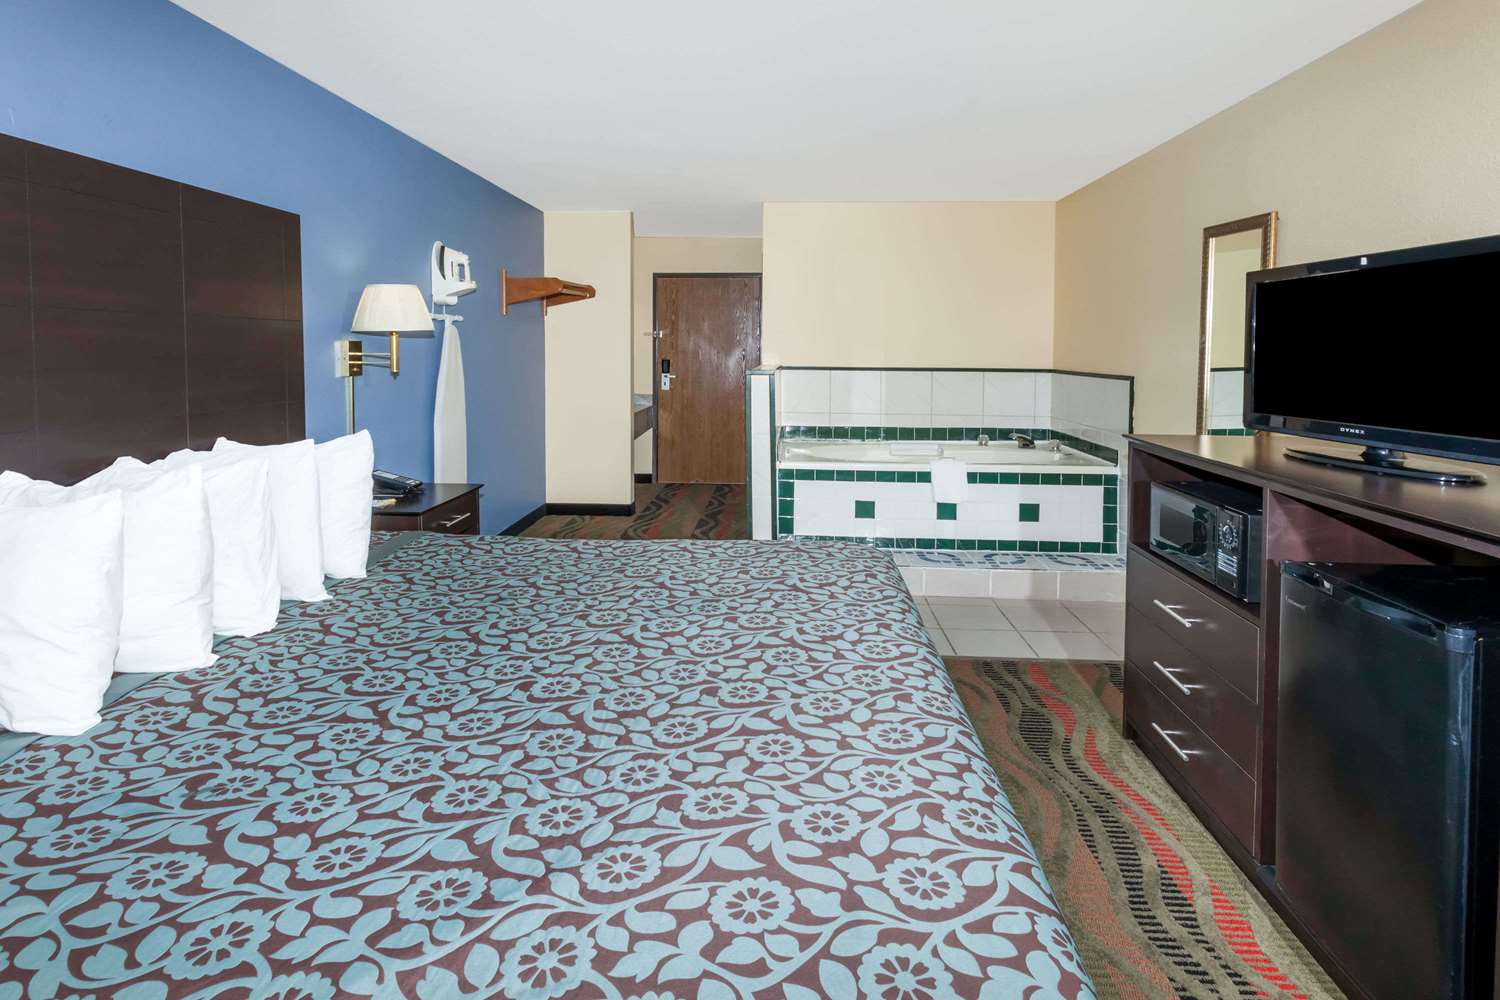 Days Inn South Springfield, IL - See Discounts